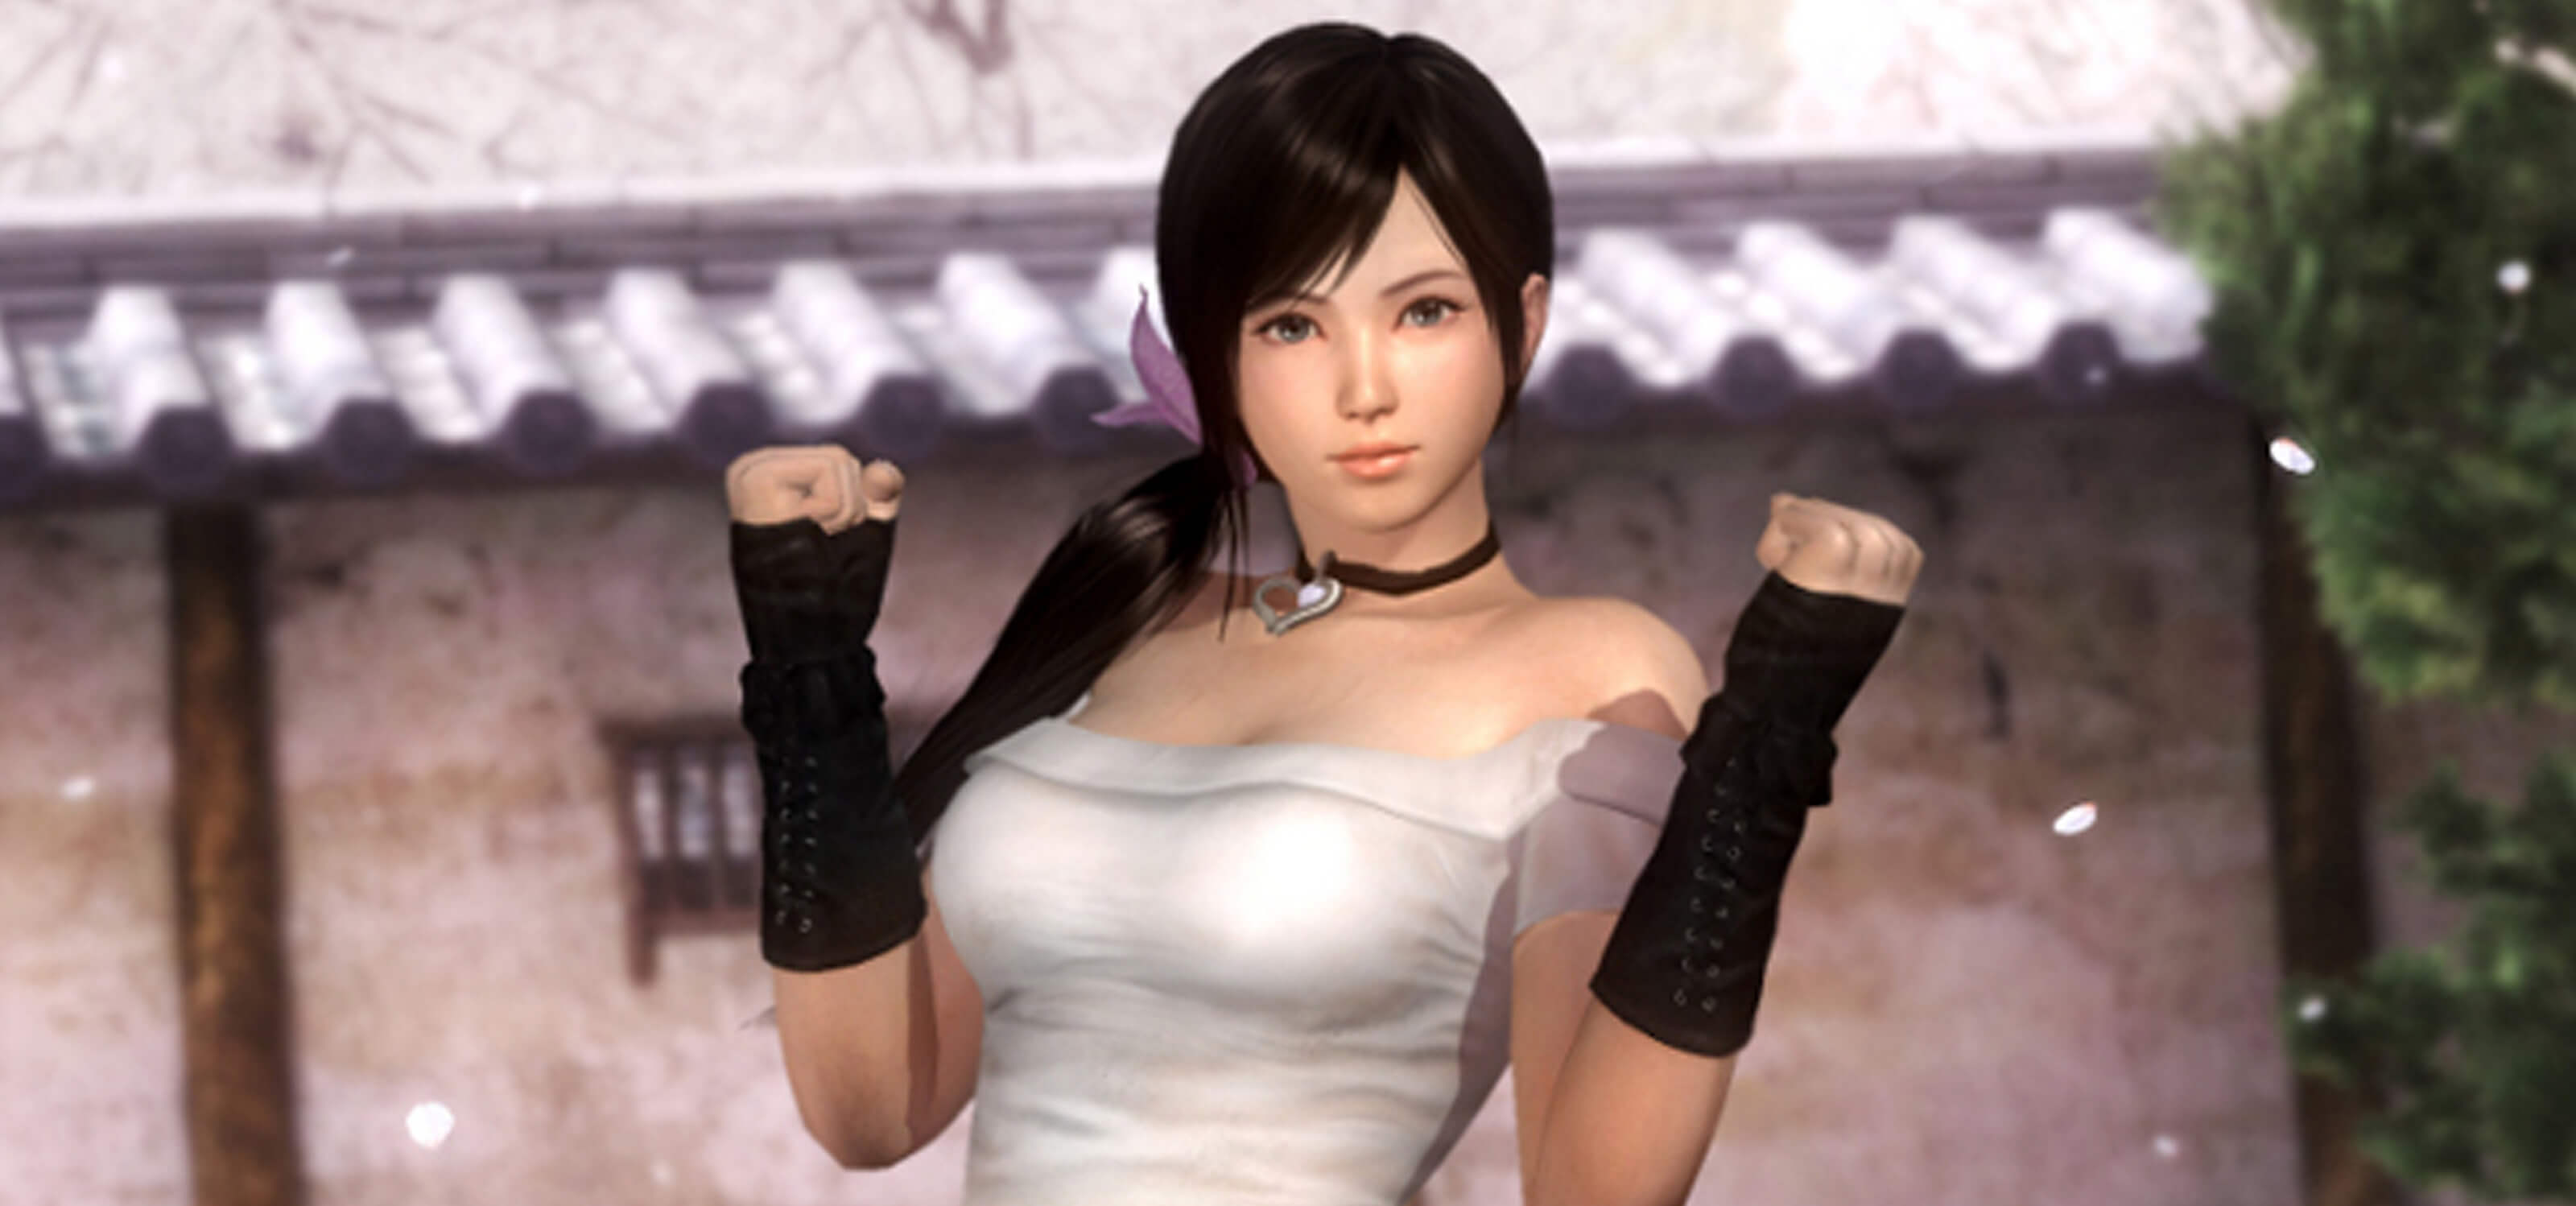 Kokoro from the Dead or Alive franchise stands in a courtyard in a white tube top